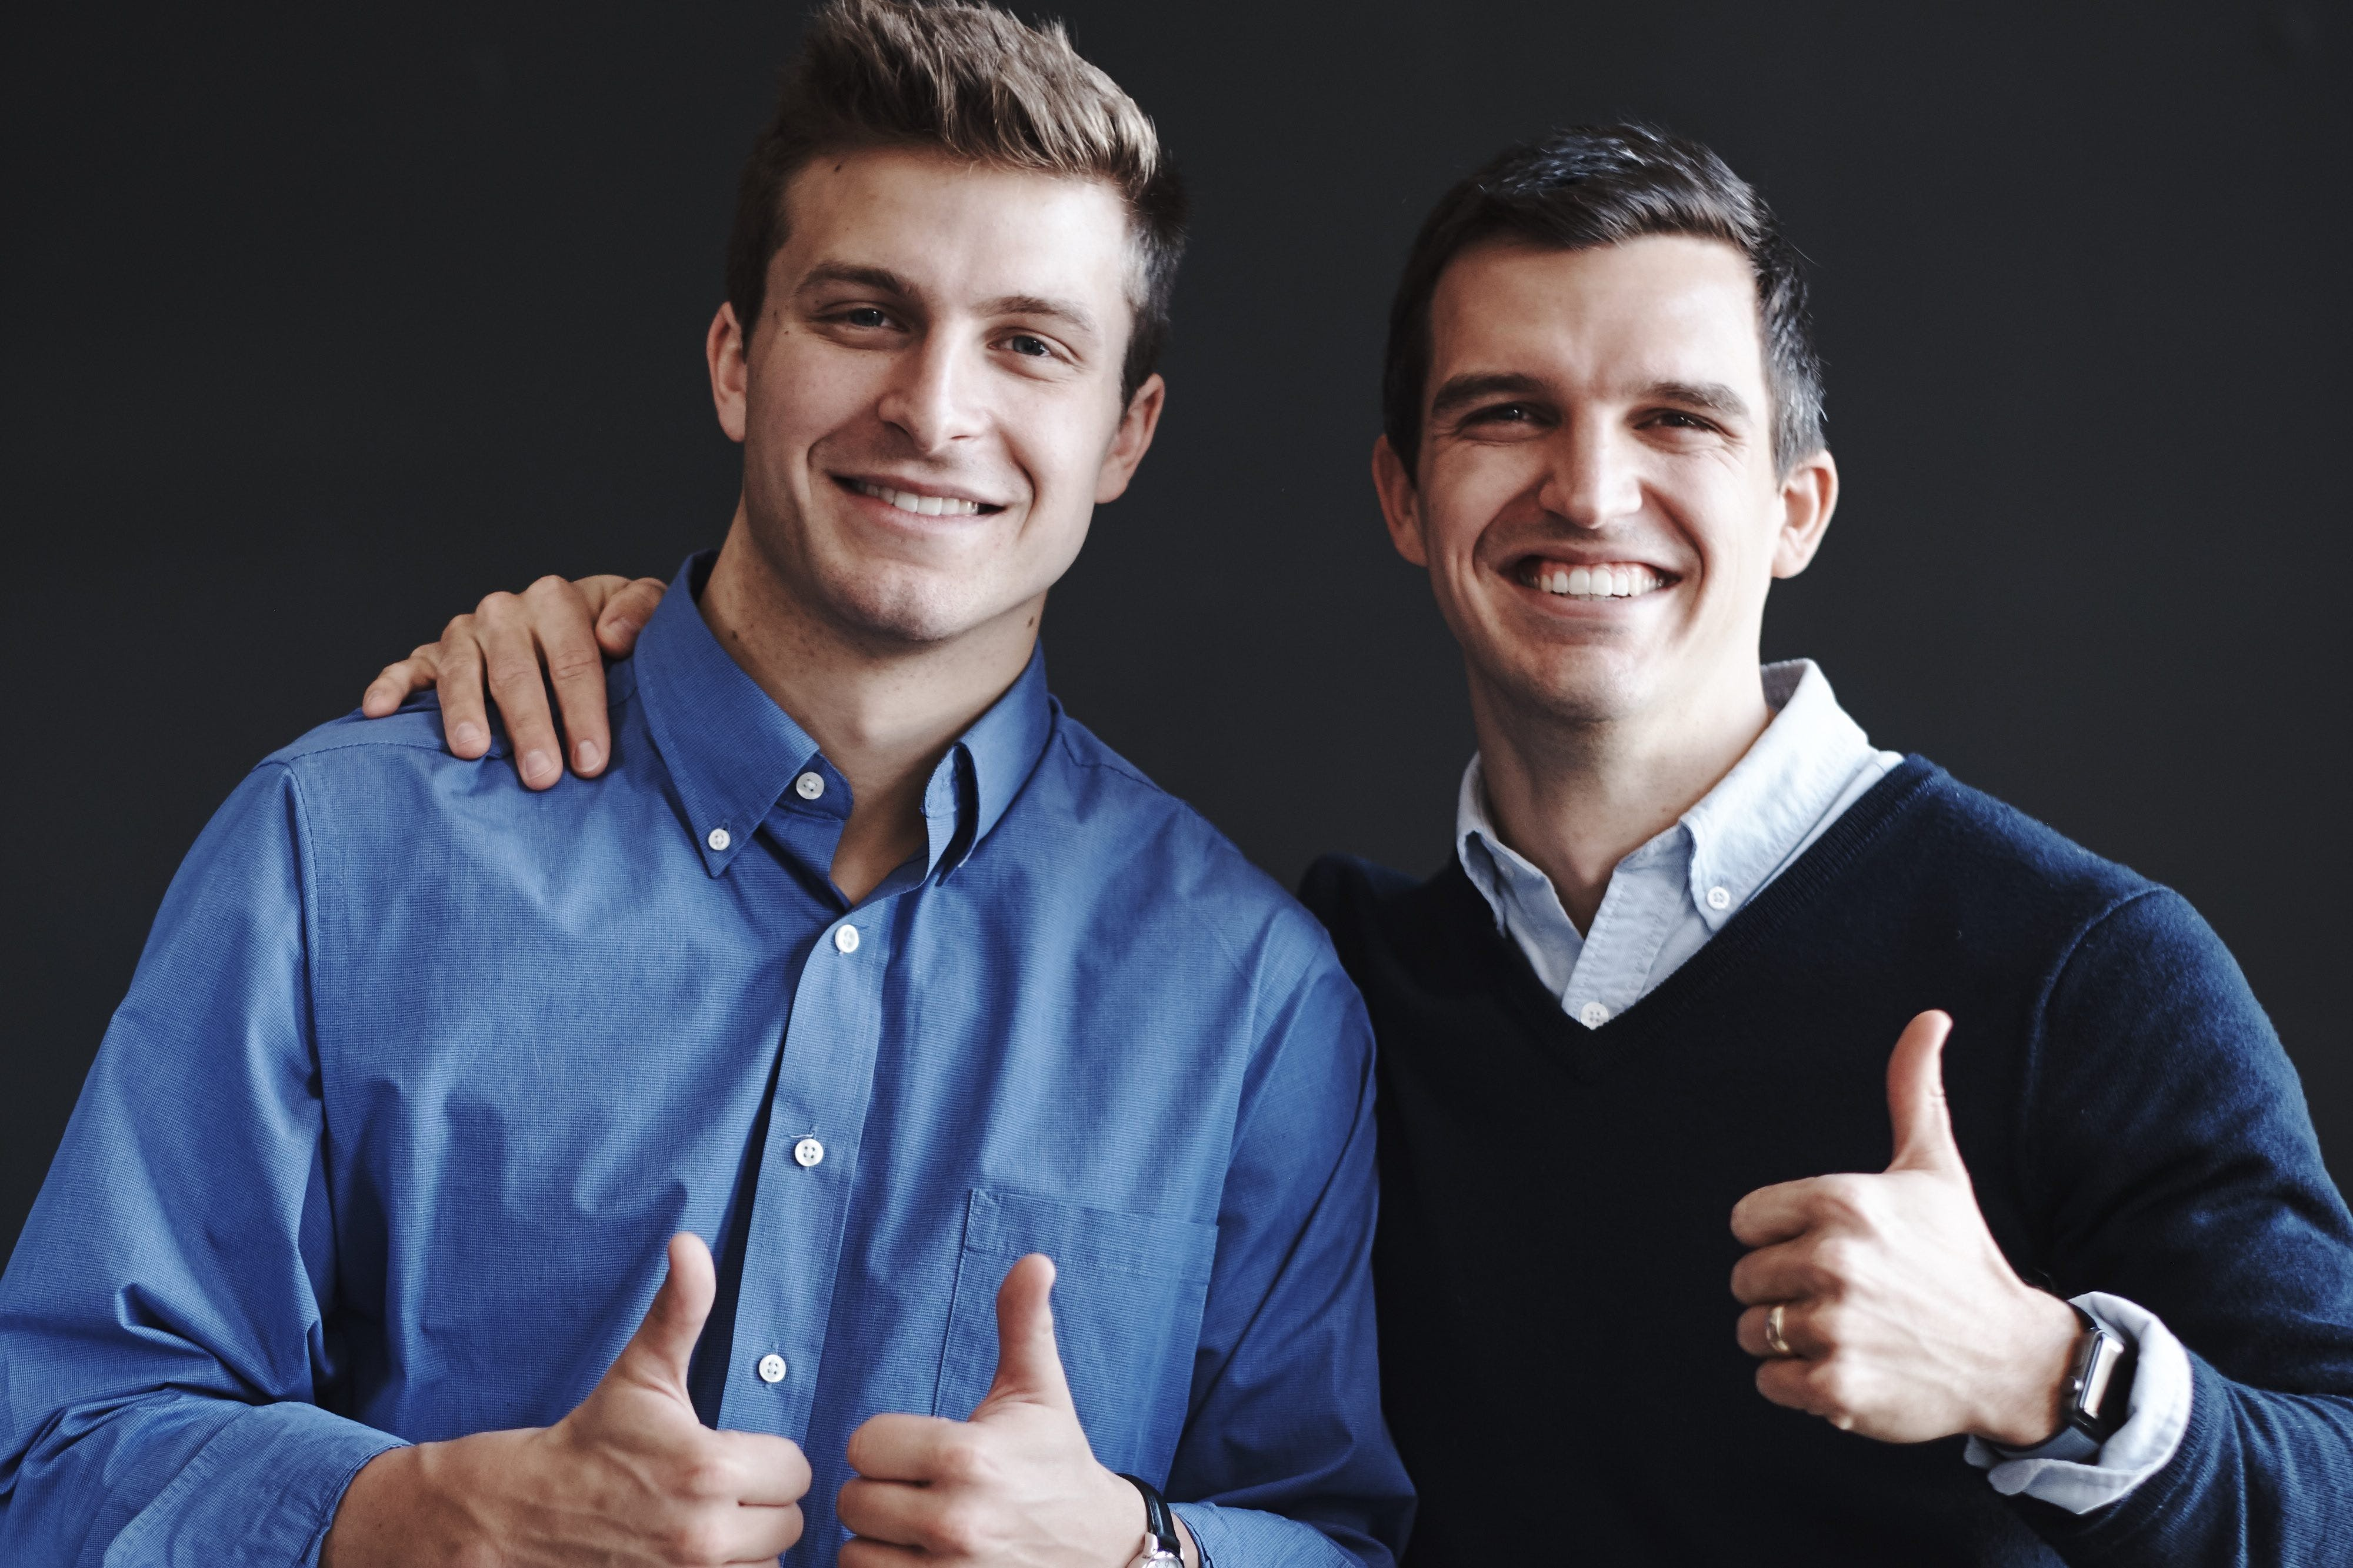 Sam Steadman '16 and Taylor Doolittle co-founded and co-lead Team Steady Real Estate.